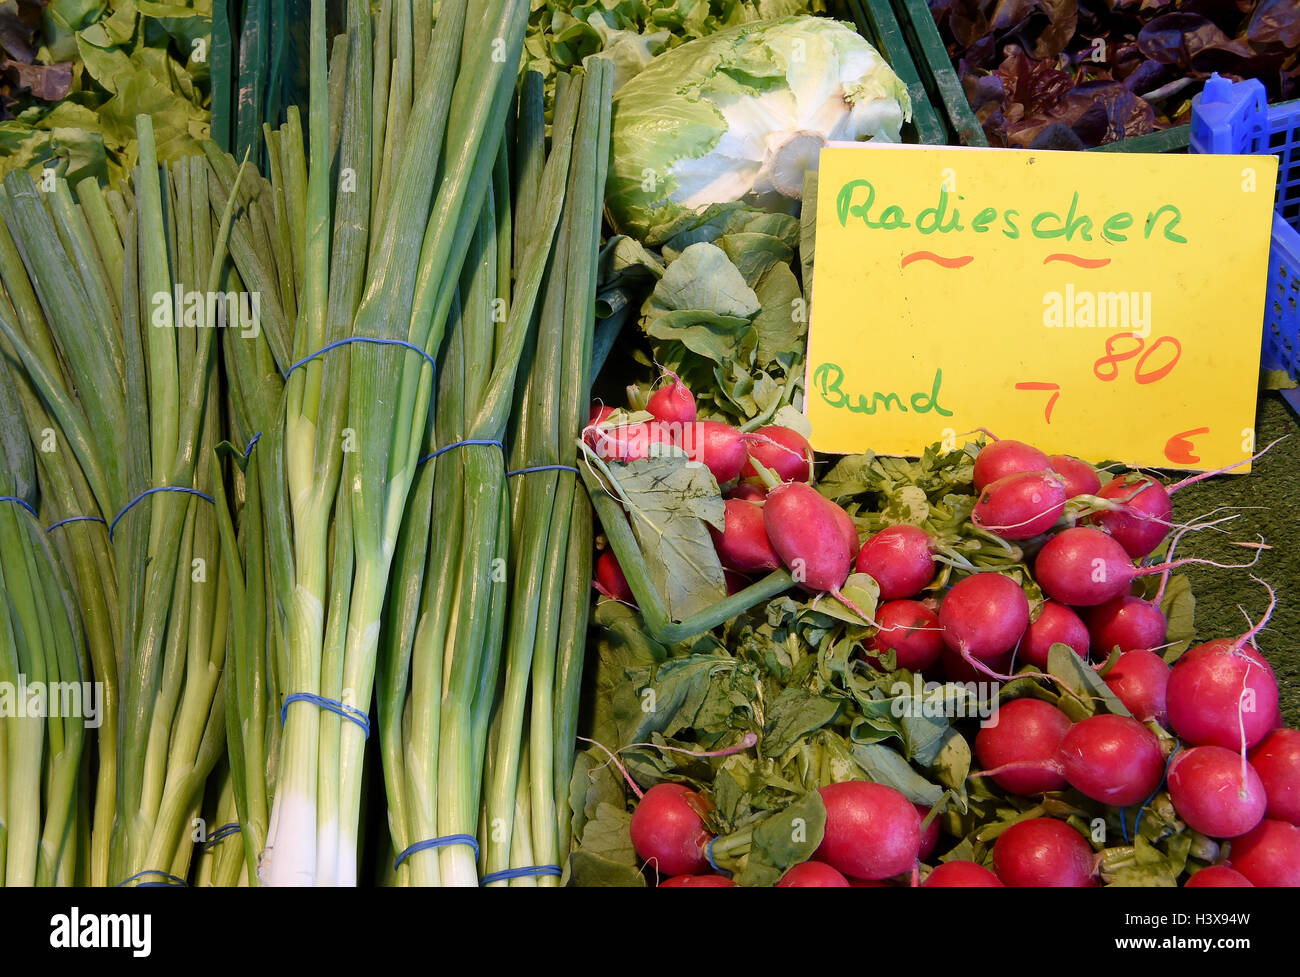 Shallots and radishes are for sale at a market stall on the weekly market in Langenhagen in the Hannover region, Stock Photo